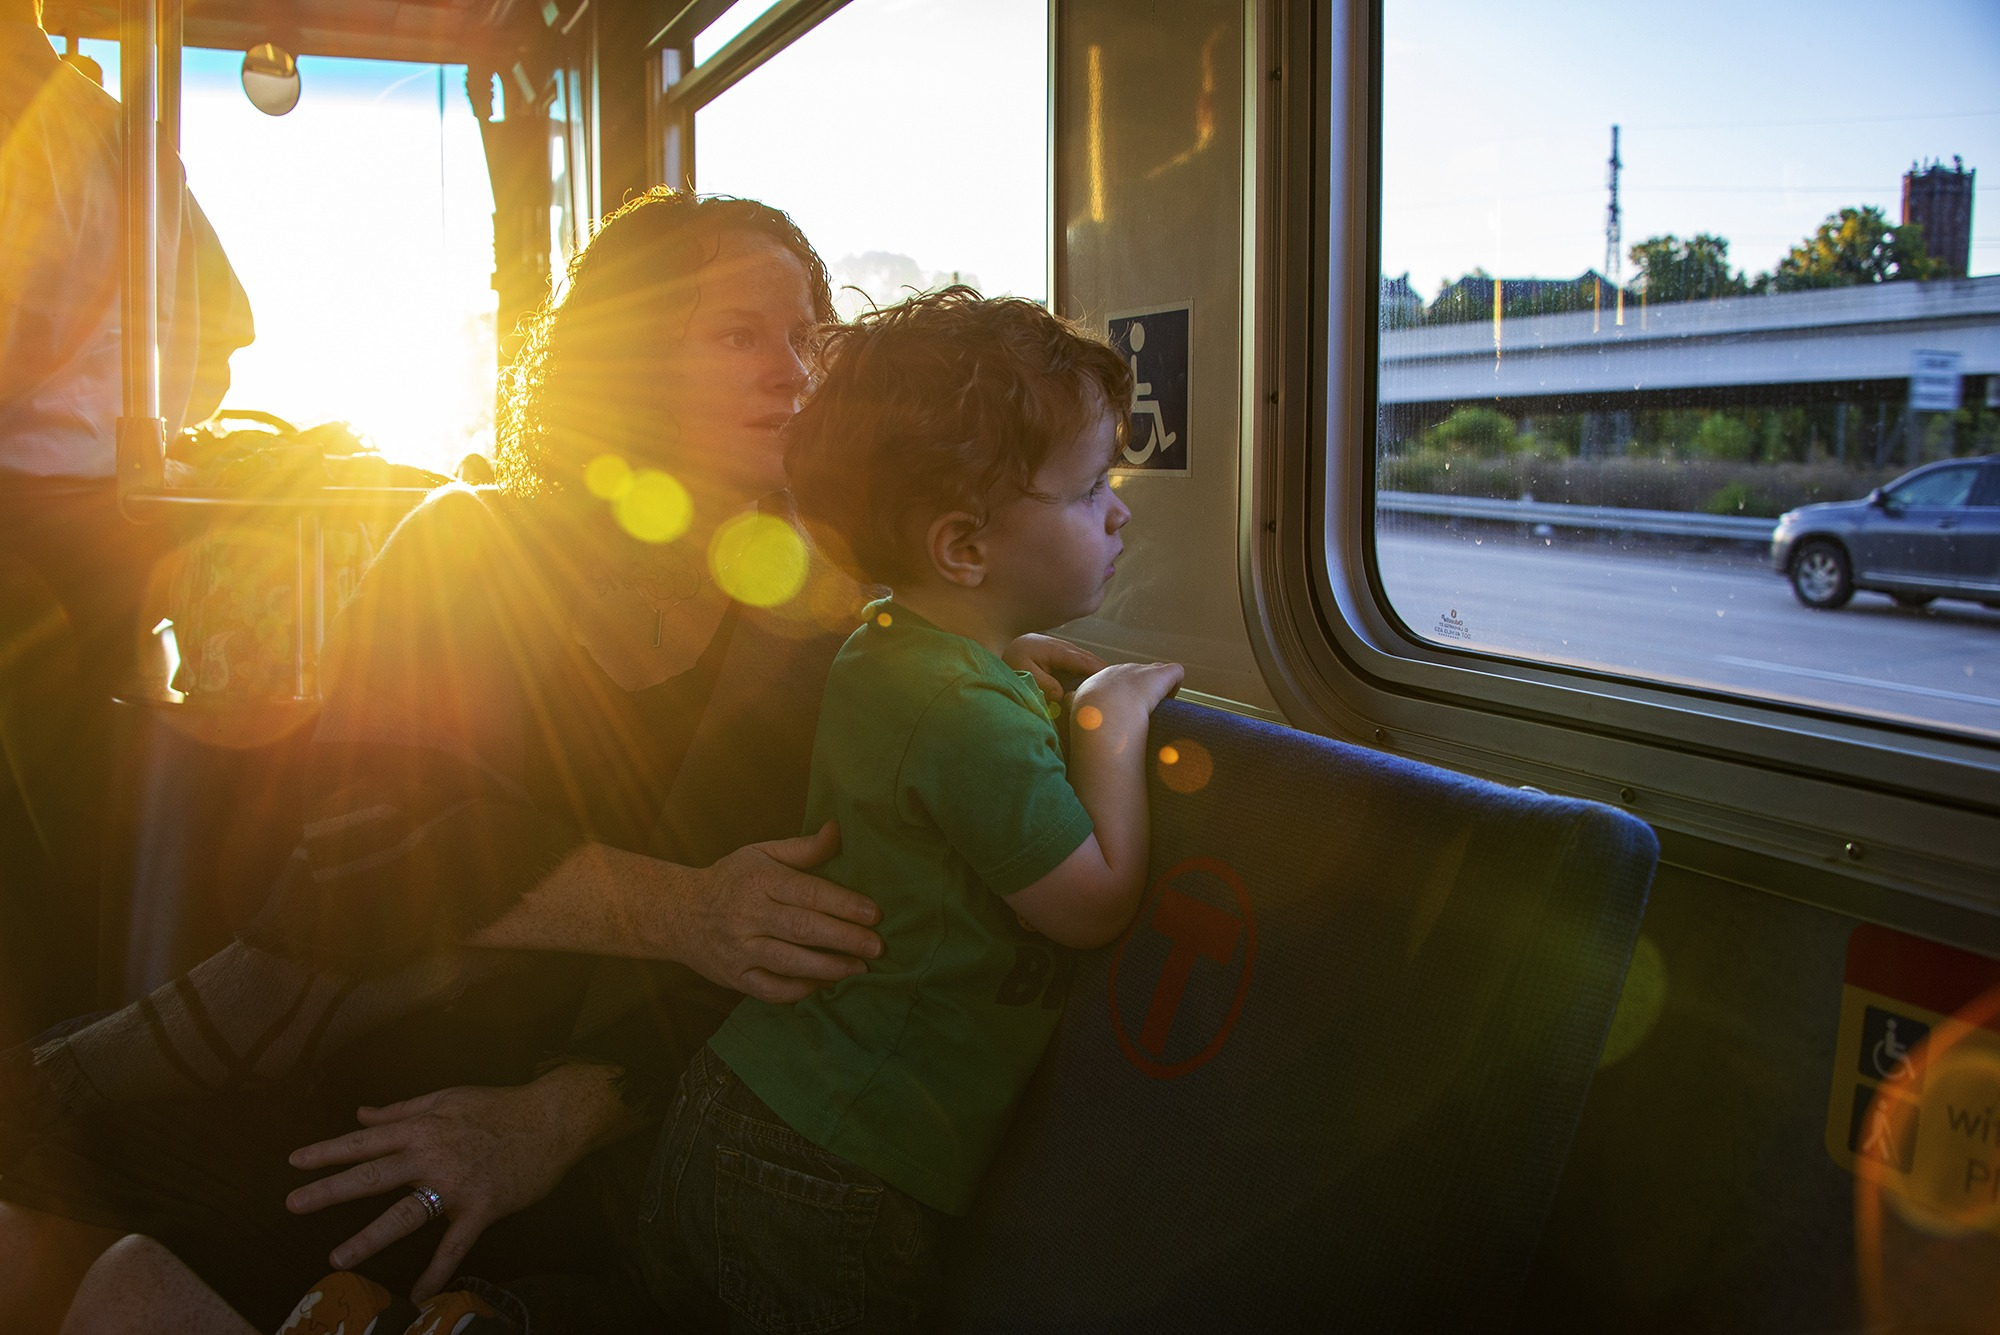 Terry Crunk and her son Finn, riding Route 758 during a recent commute to downtown Minneapolis.